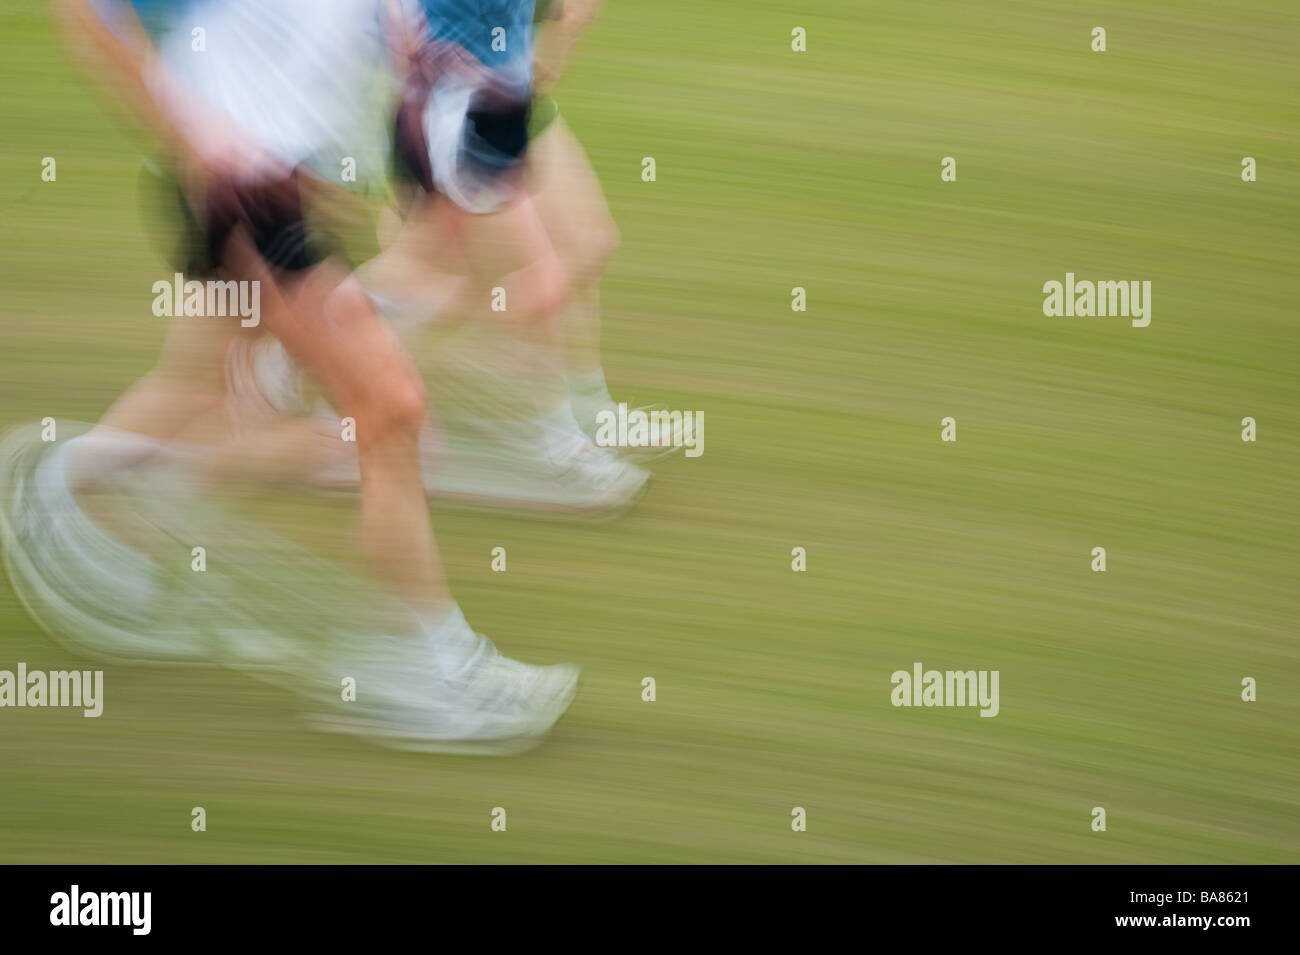 motion blur image of two people running jogging exercising - Stock Image